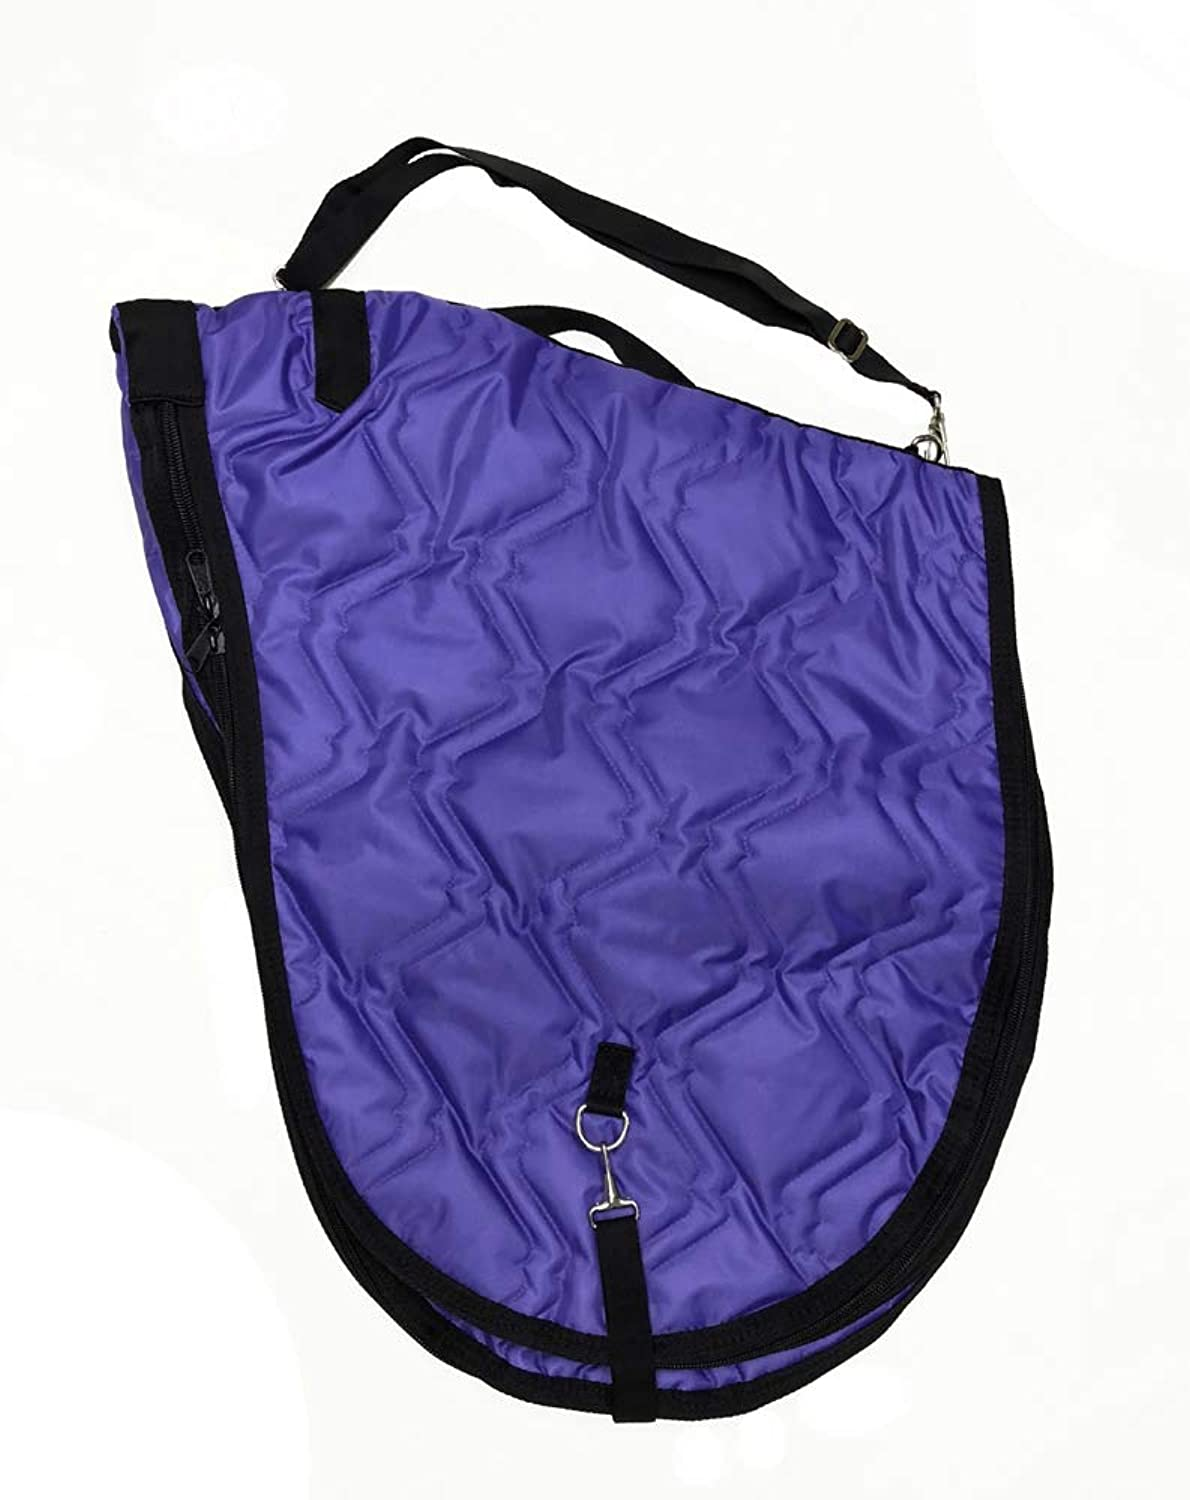 English Horse Saddle Carrier Travel Case Bag All Purpose Saddle Quilted